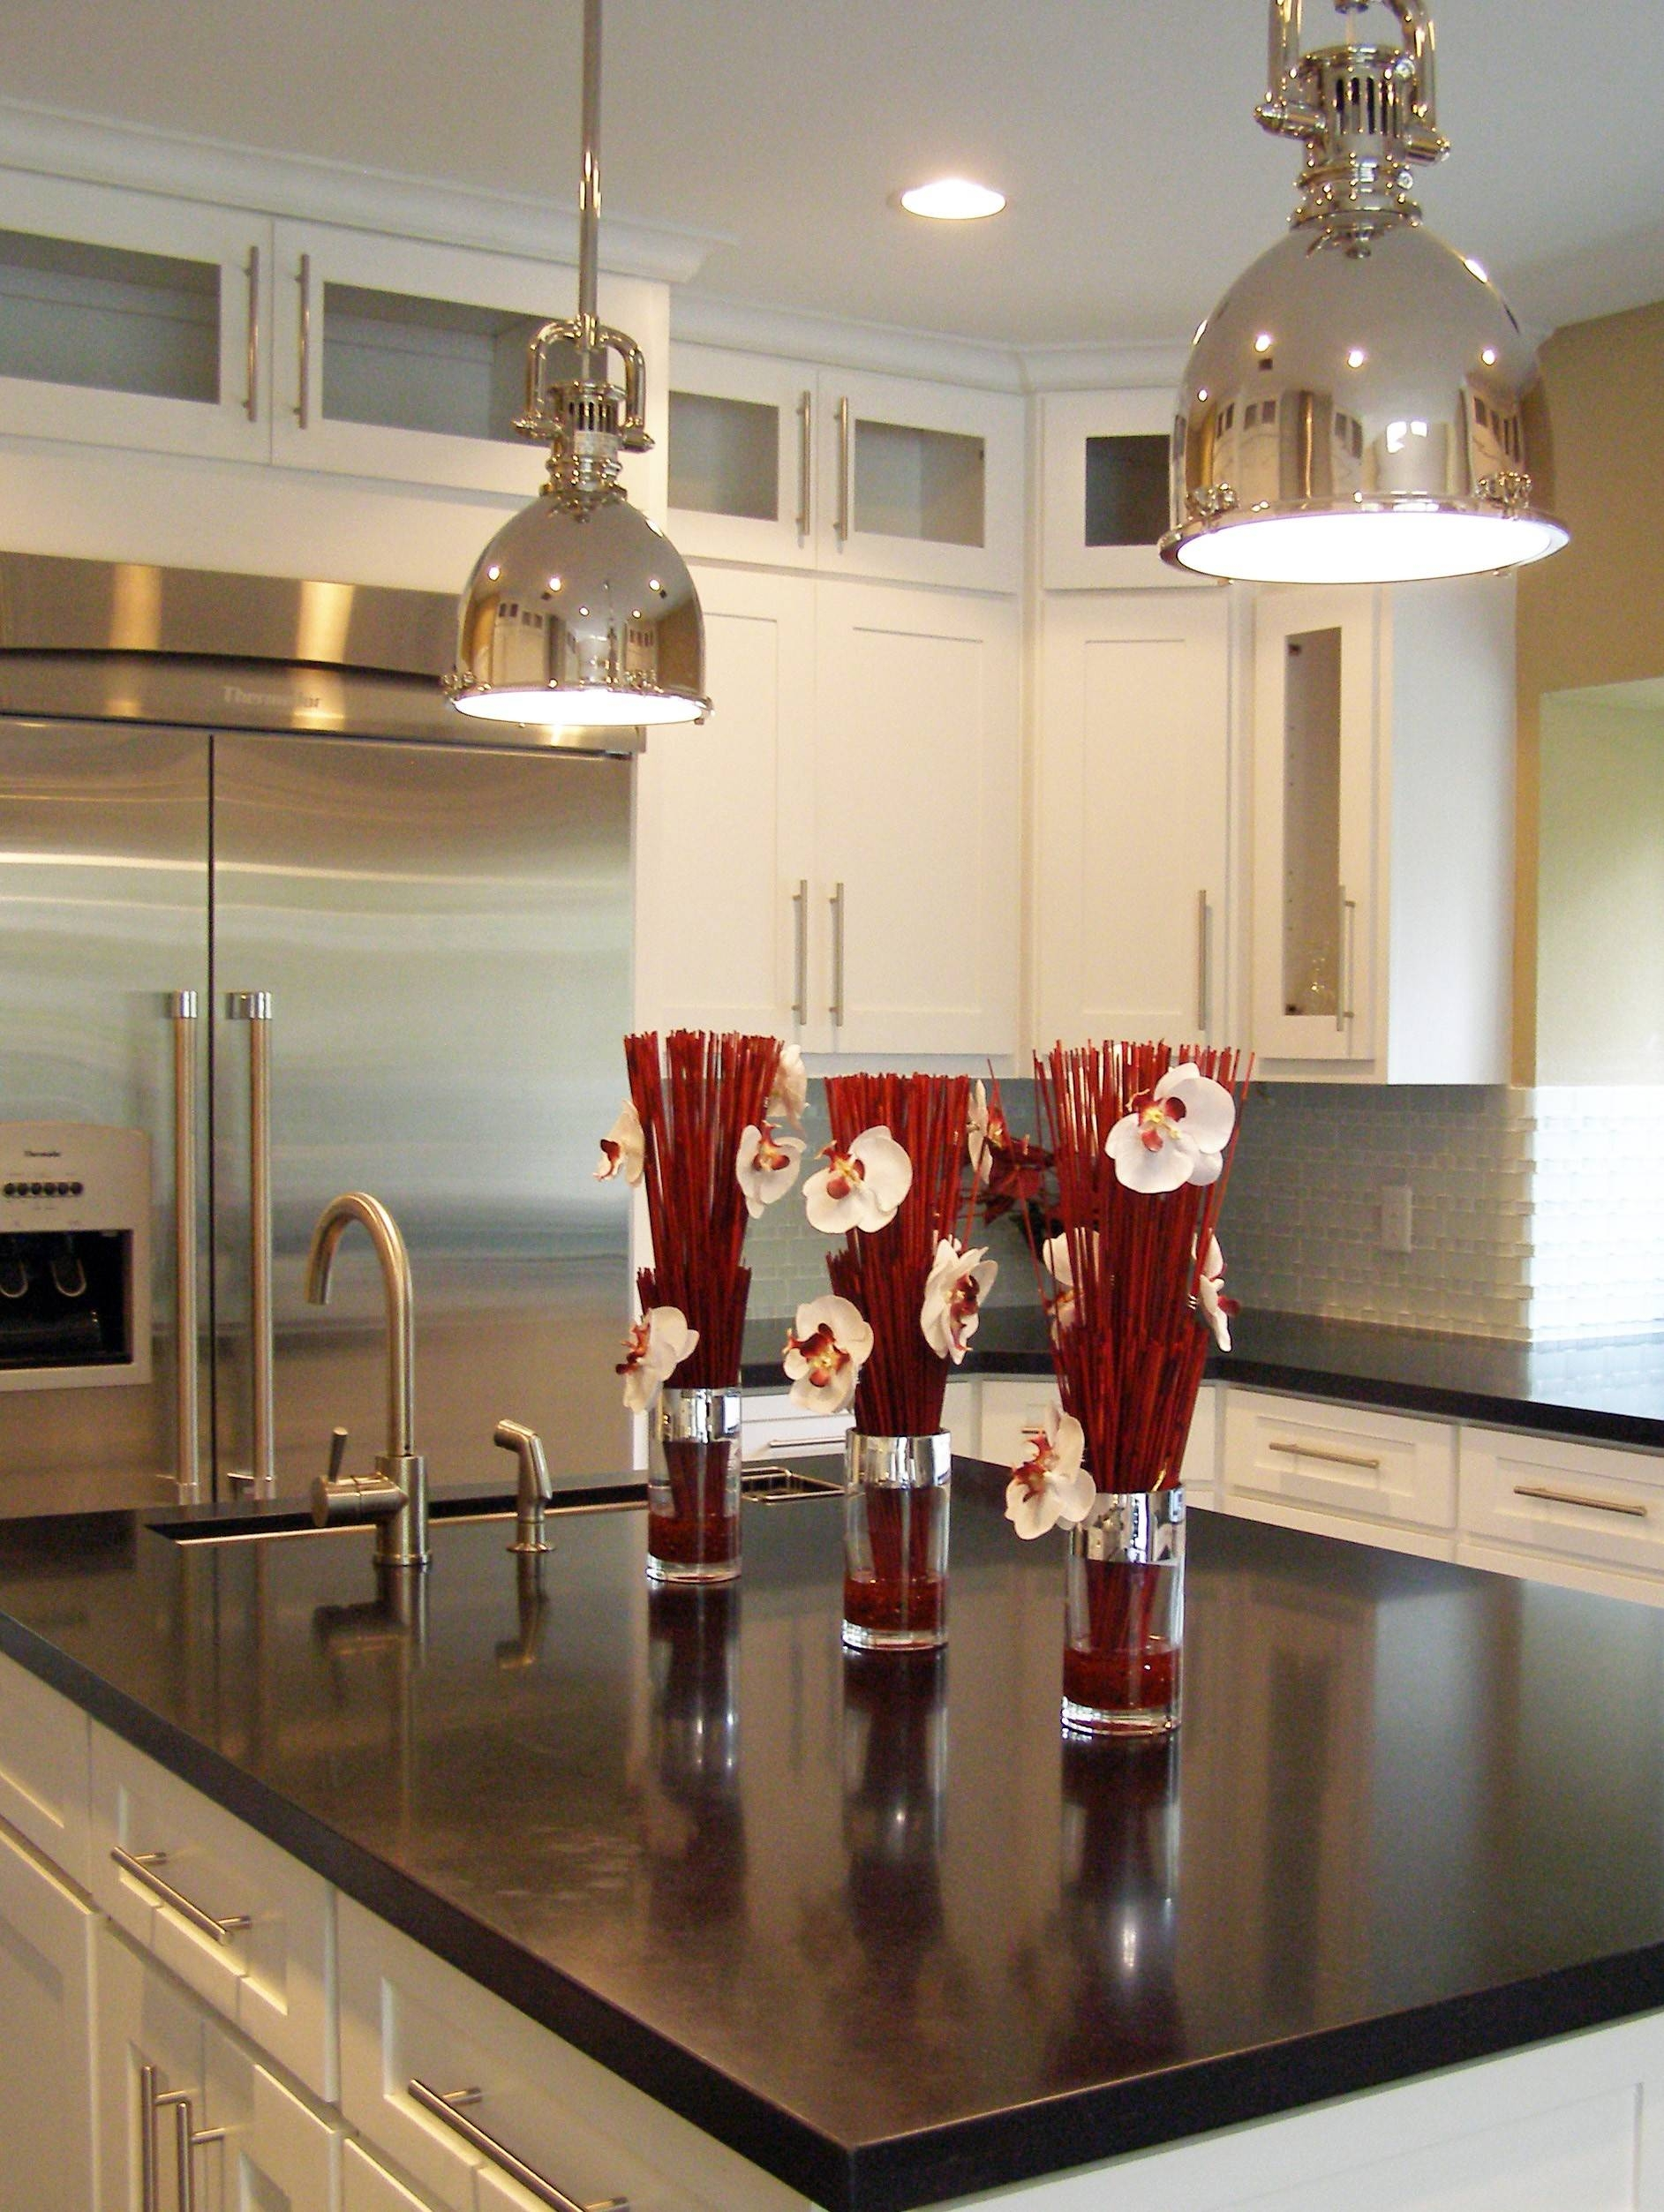 Furniture Appealing Pendant Lights For Kitchen Islands Wooden With Stainless Steel Kitchen Lights (View 5 of 15)